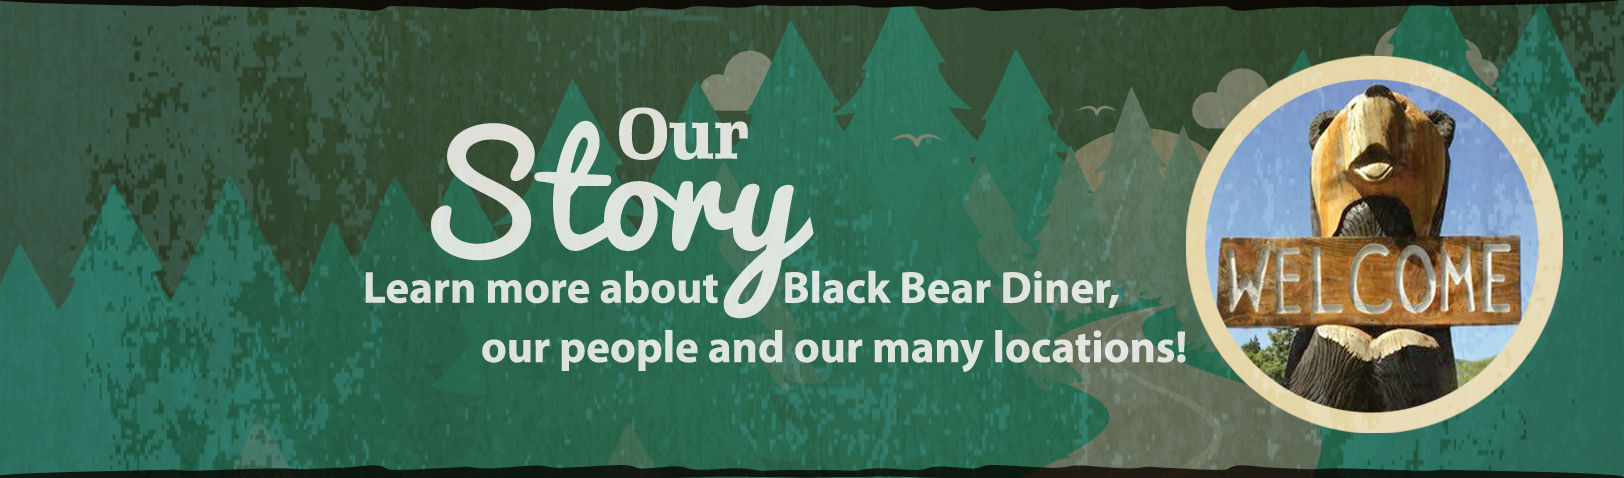 Our Story: Learn more about Black Bear Diner, our people, and our many locations!